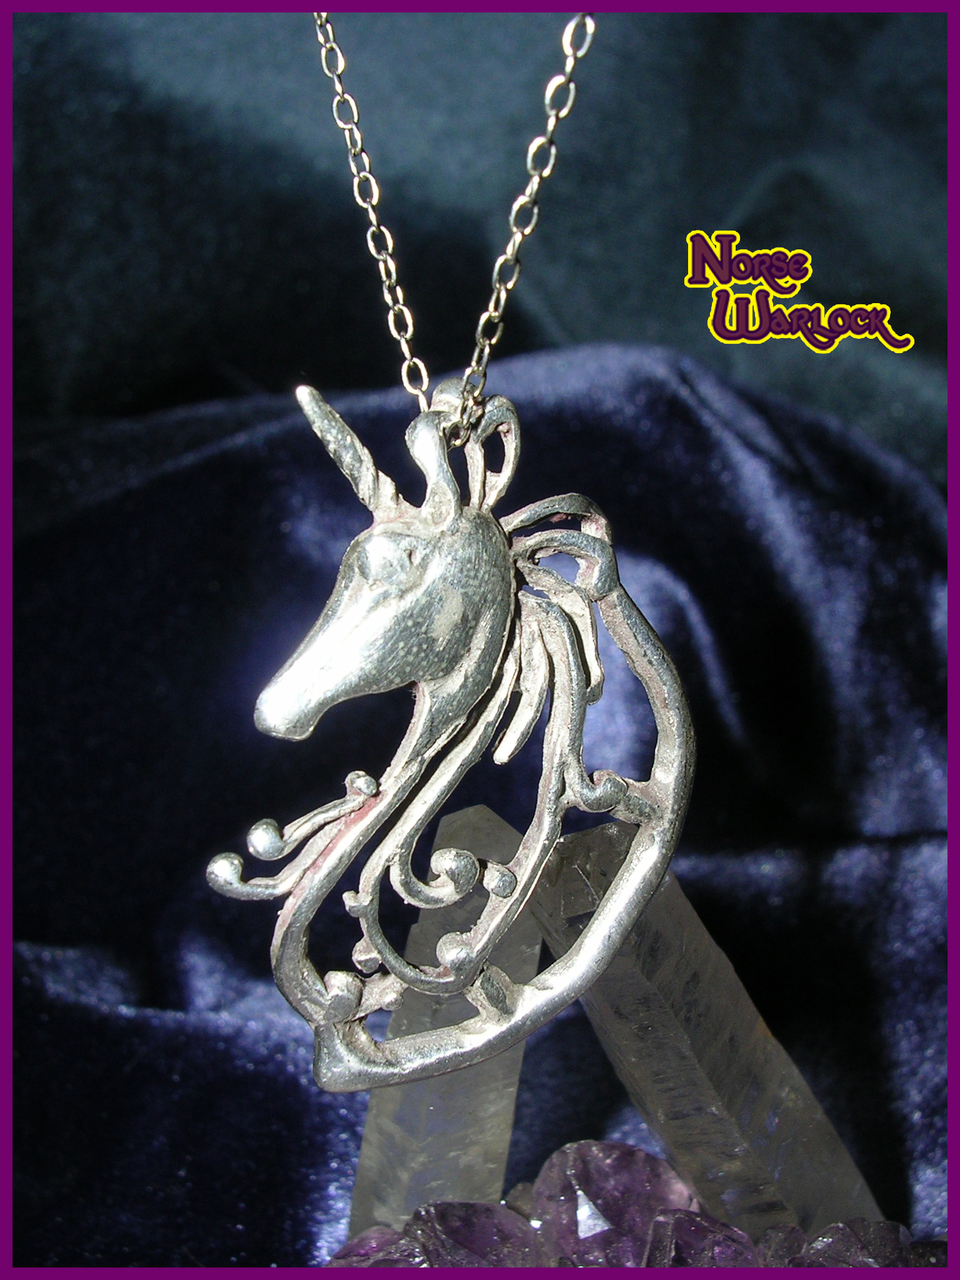 gold hills product and free shipping jewelry unicorn overstock necklace black watches pendant silver sterling today